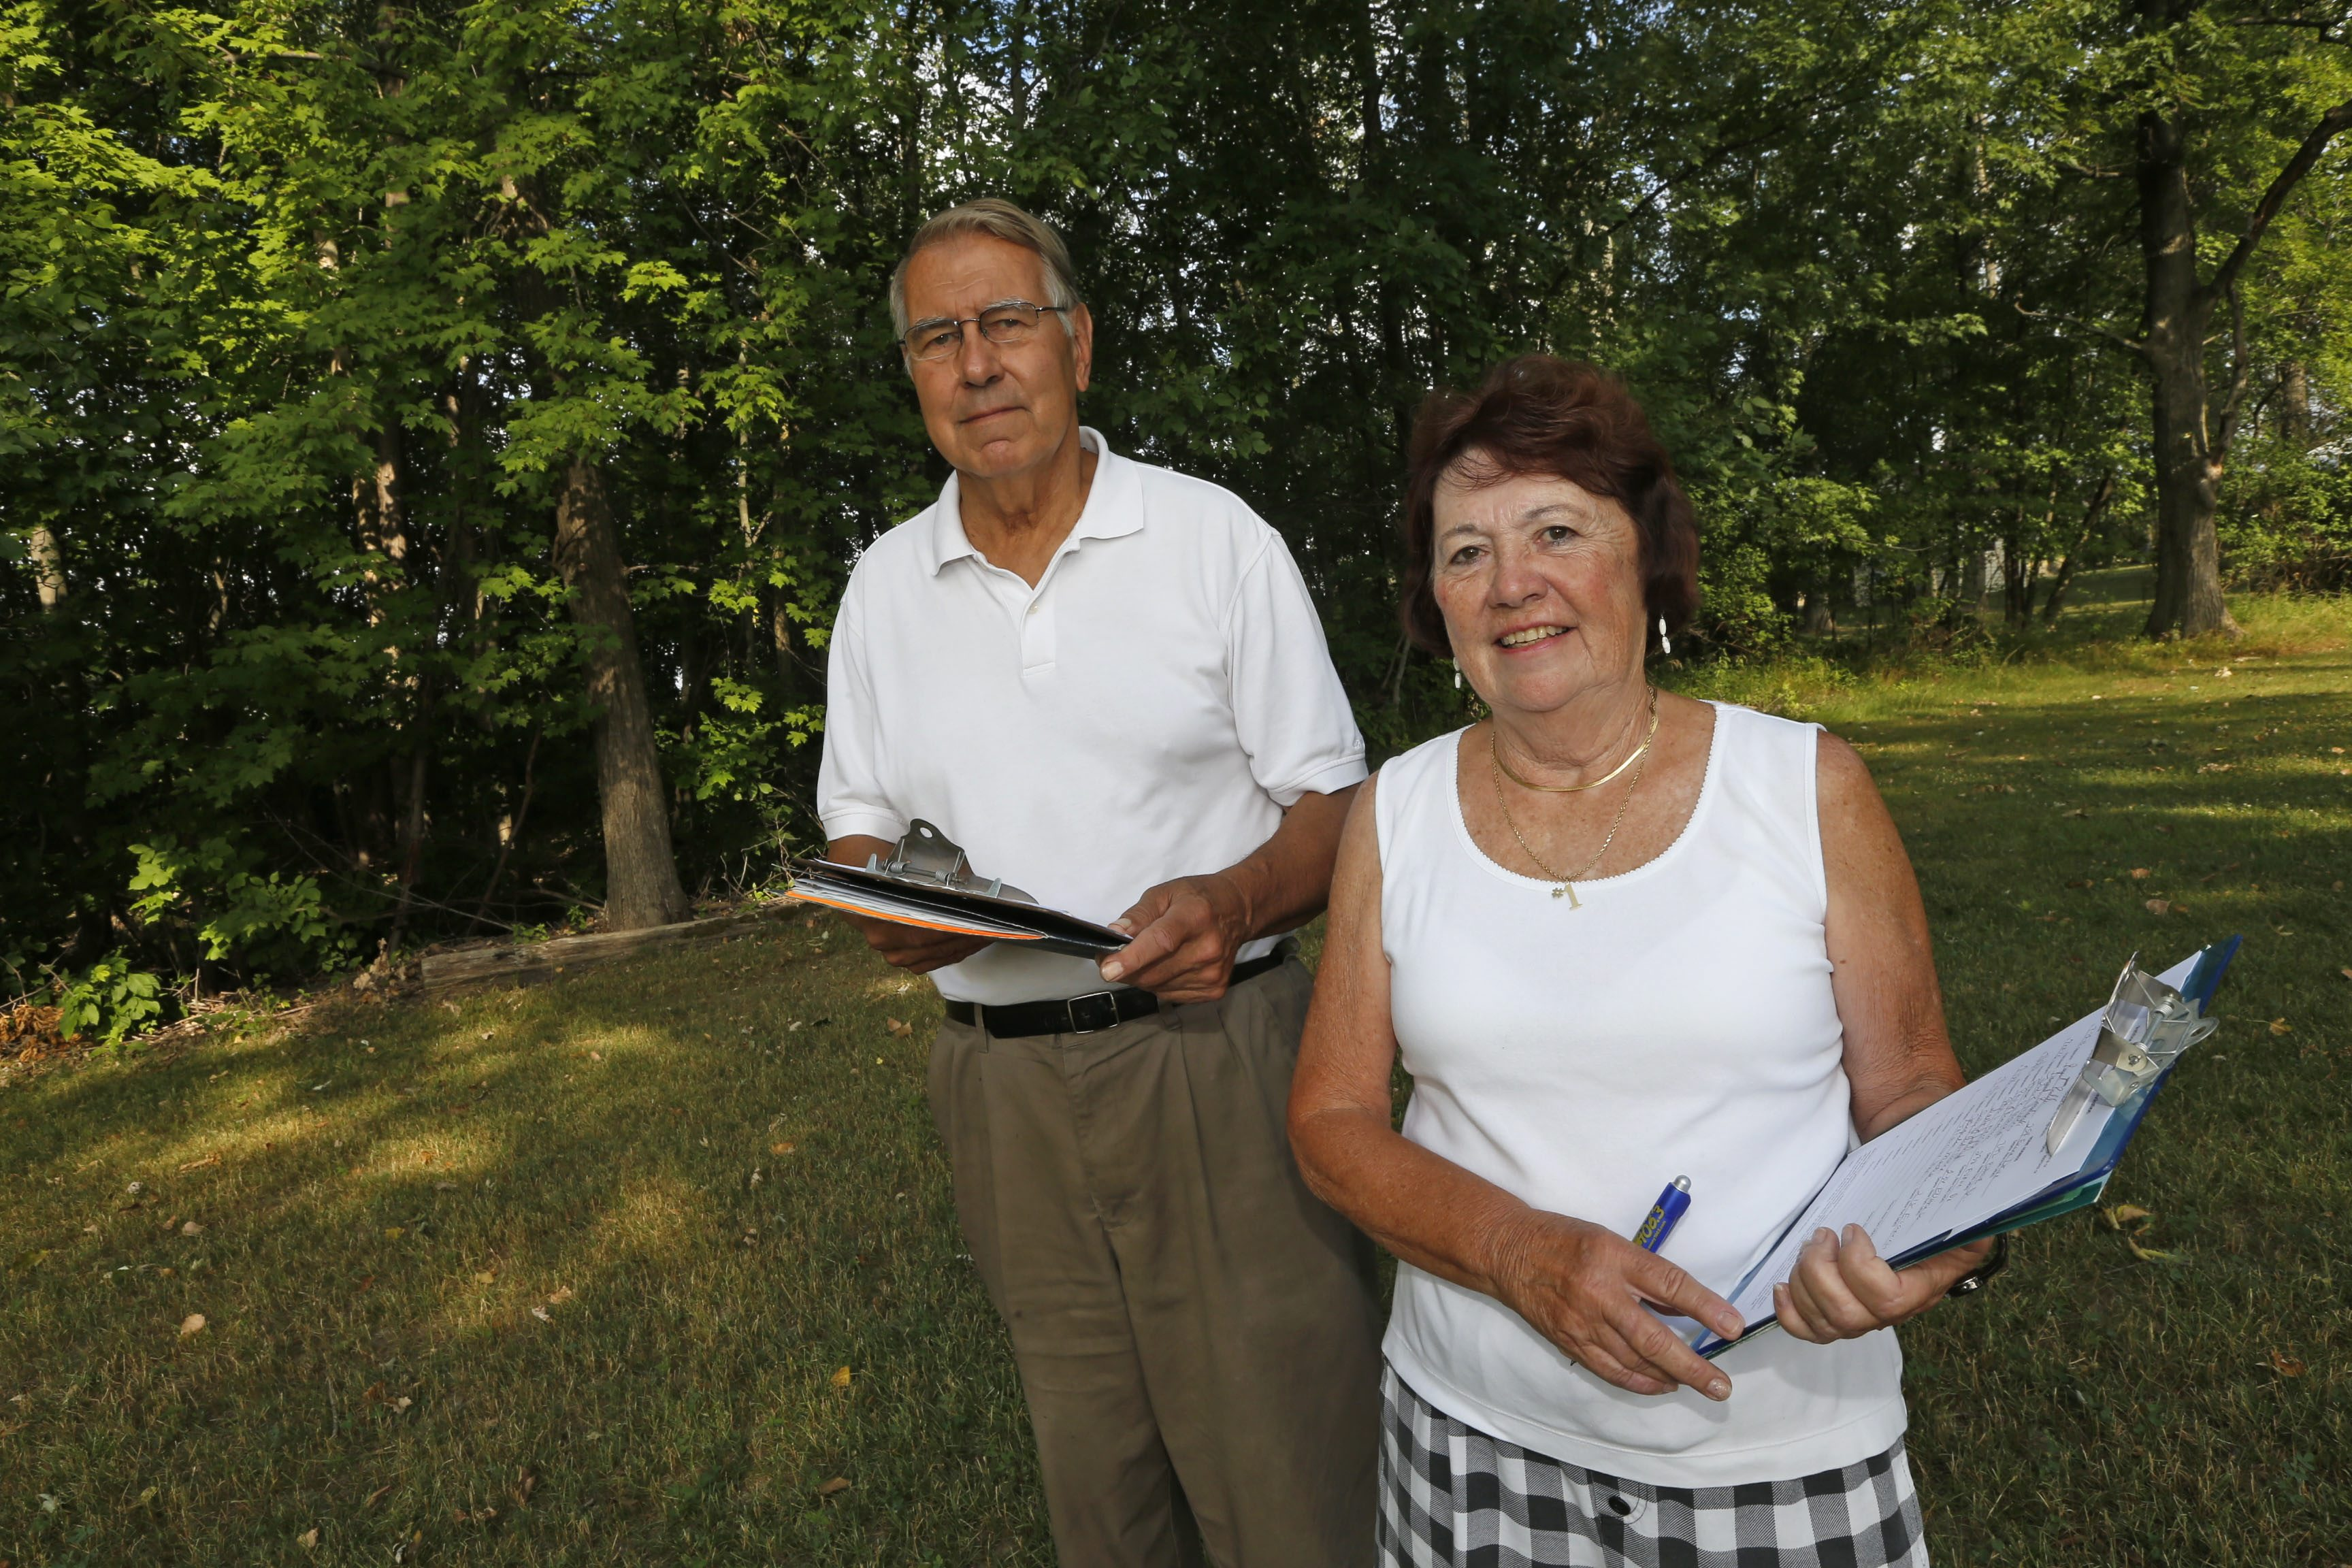 Joan Priebe and Irvine. G. Reinig II have been soliciting signatures to cause a referendum to dissolve the Village of Depew. (Robert Kirkham/Buffalo News)